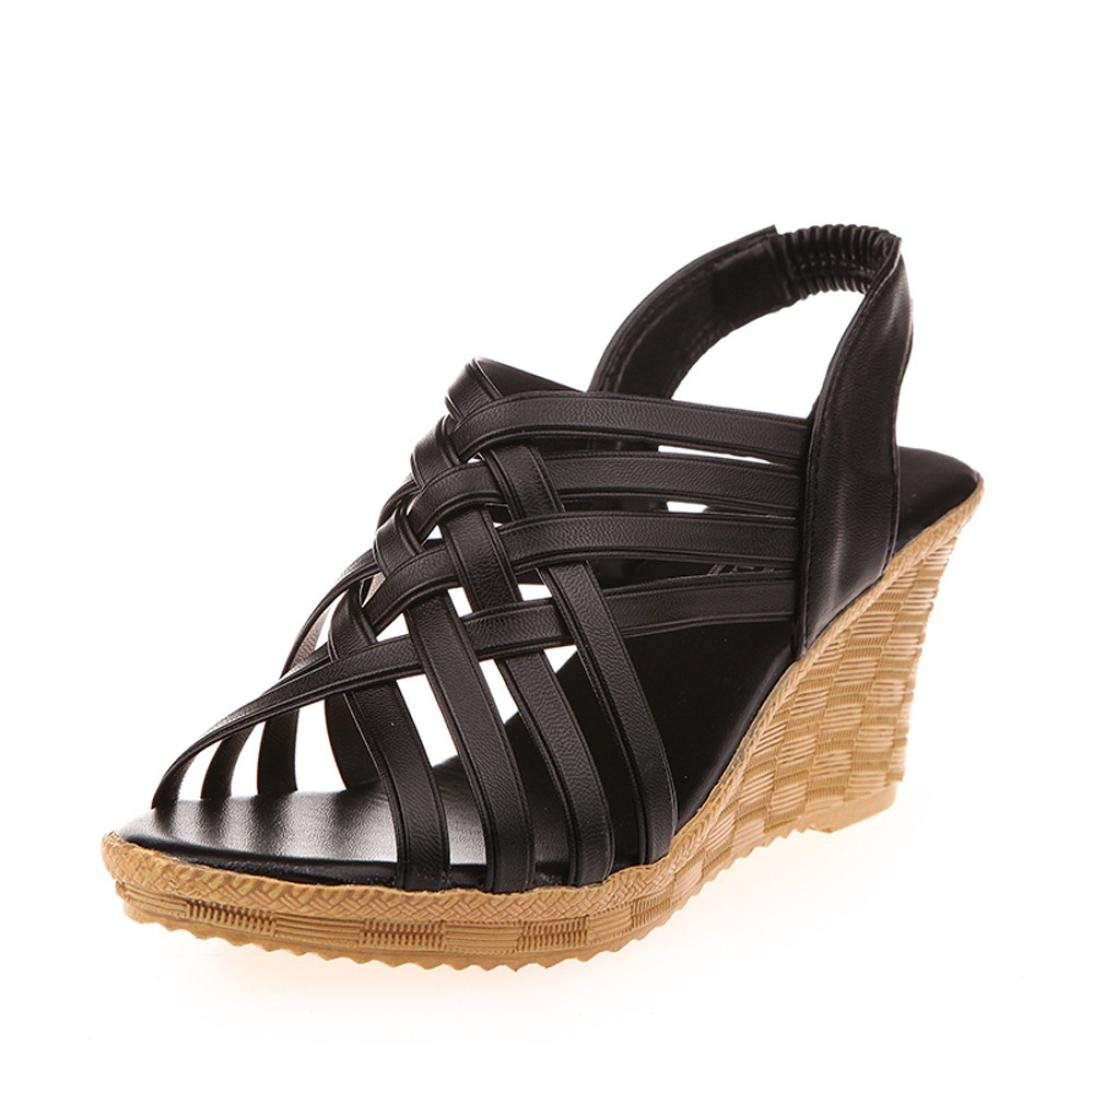 Tsmile Women Sandals Summer Checkered Belt Gladiator Sandal High Platforms Wedges Cut Outs Pattern Shoes Black